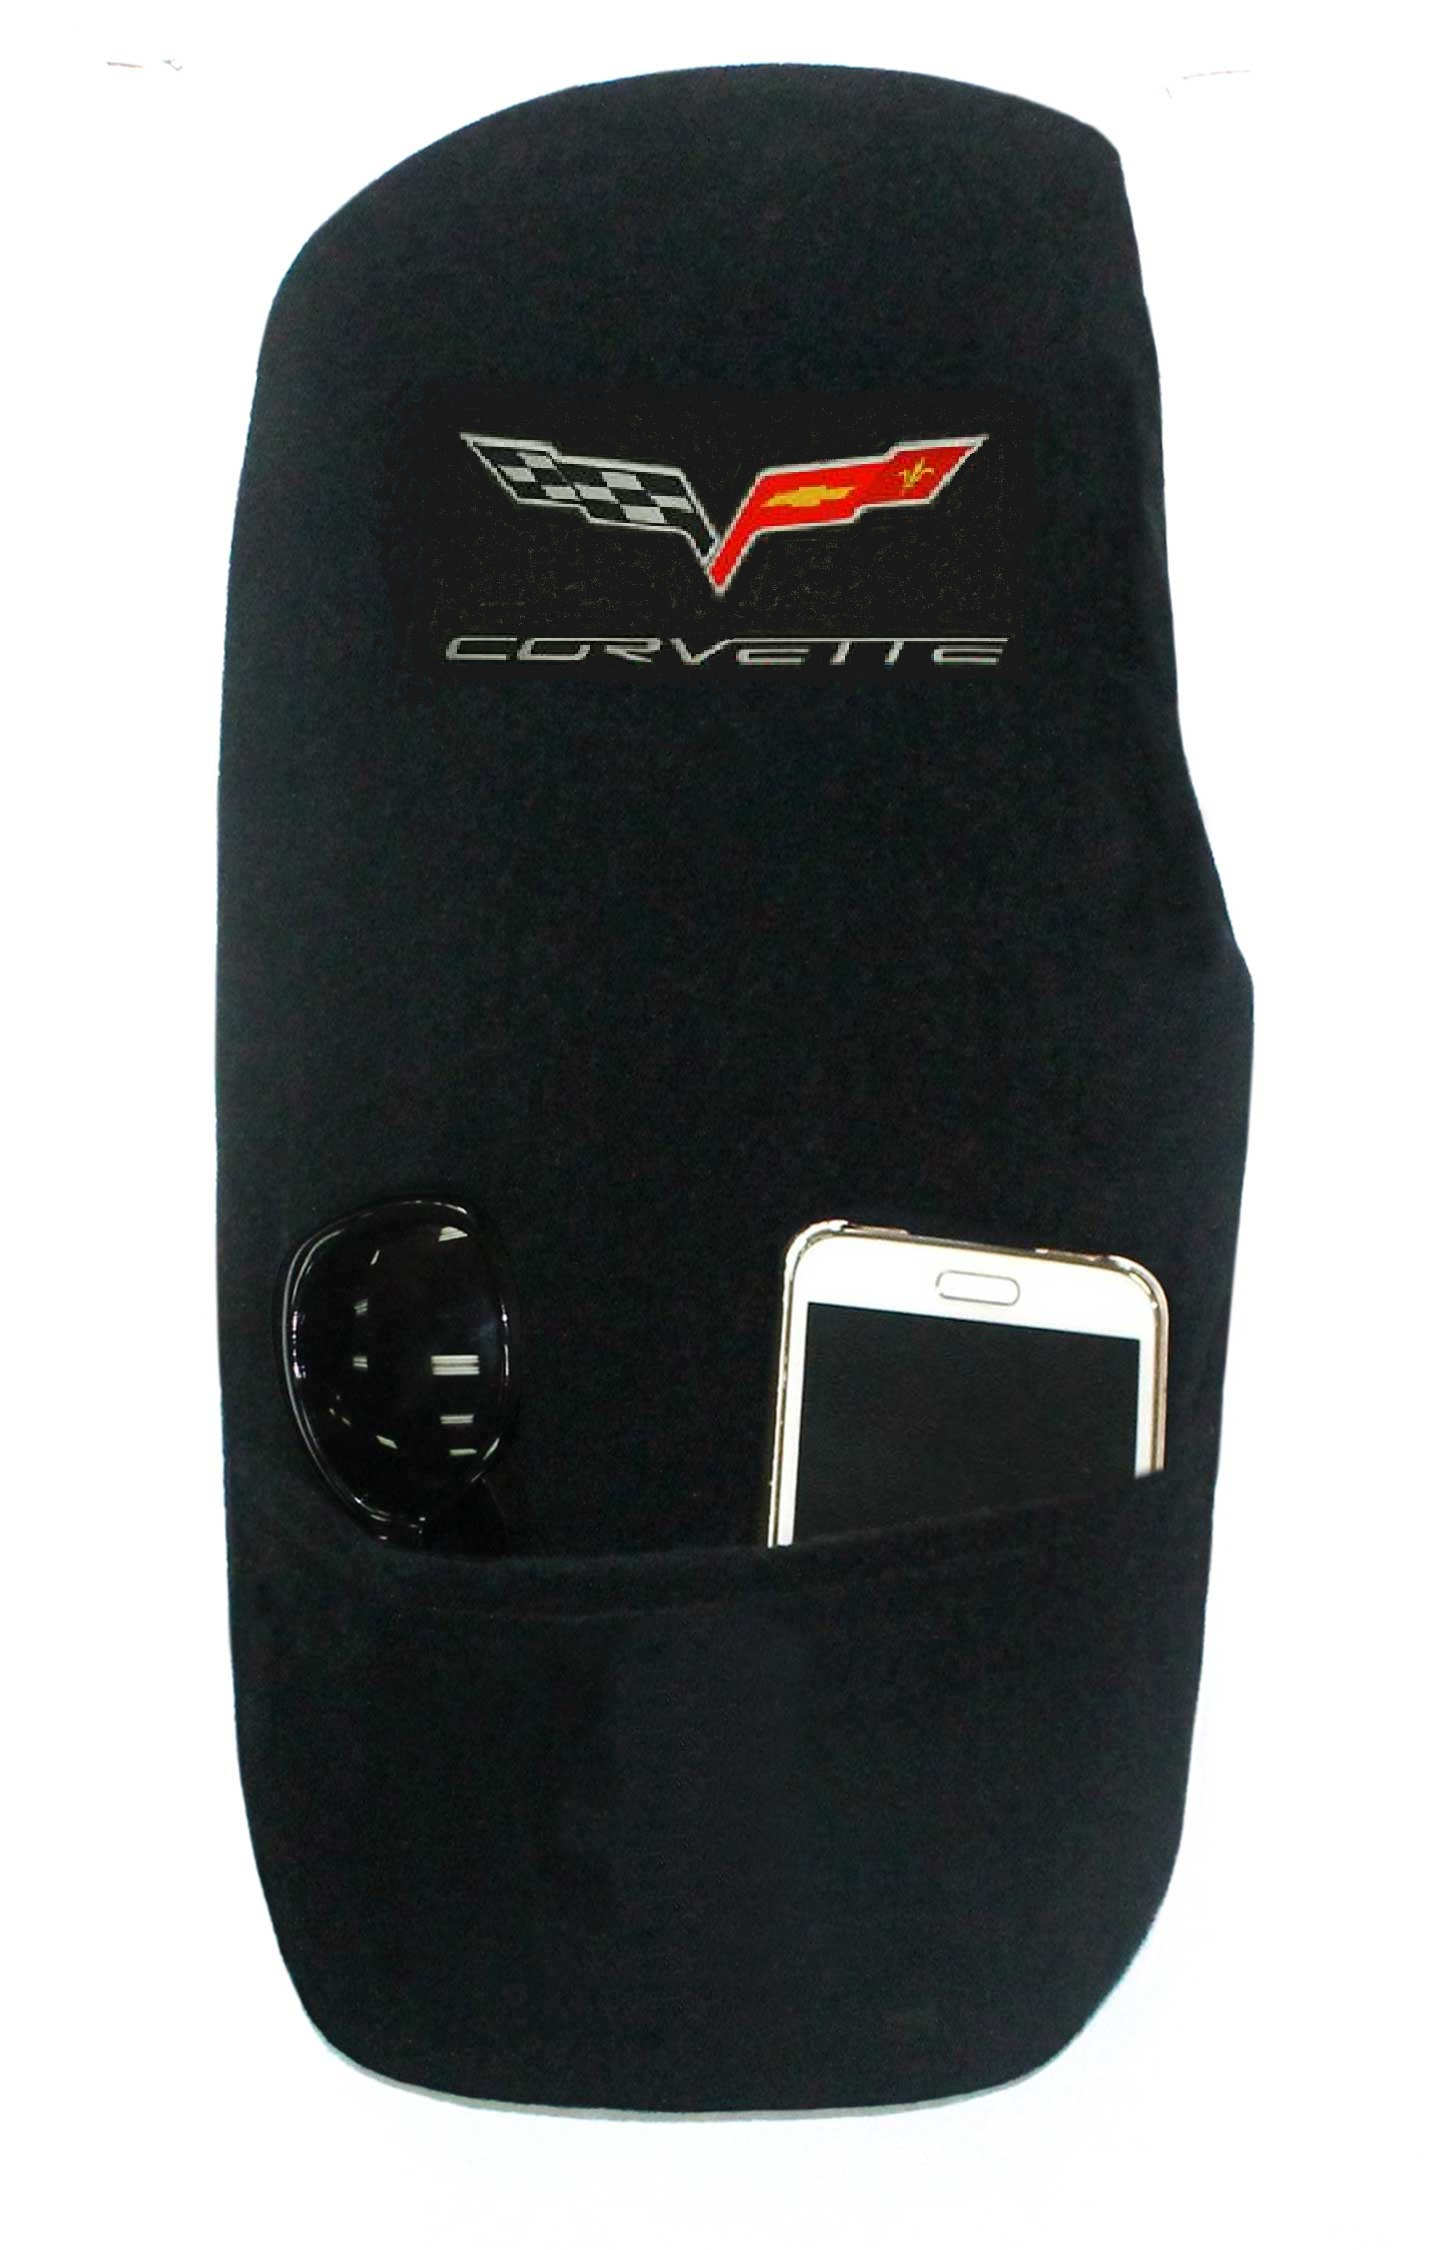 05-13 C6 Corvette Embroidered Emblem Center Console Cover